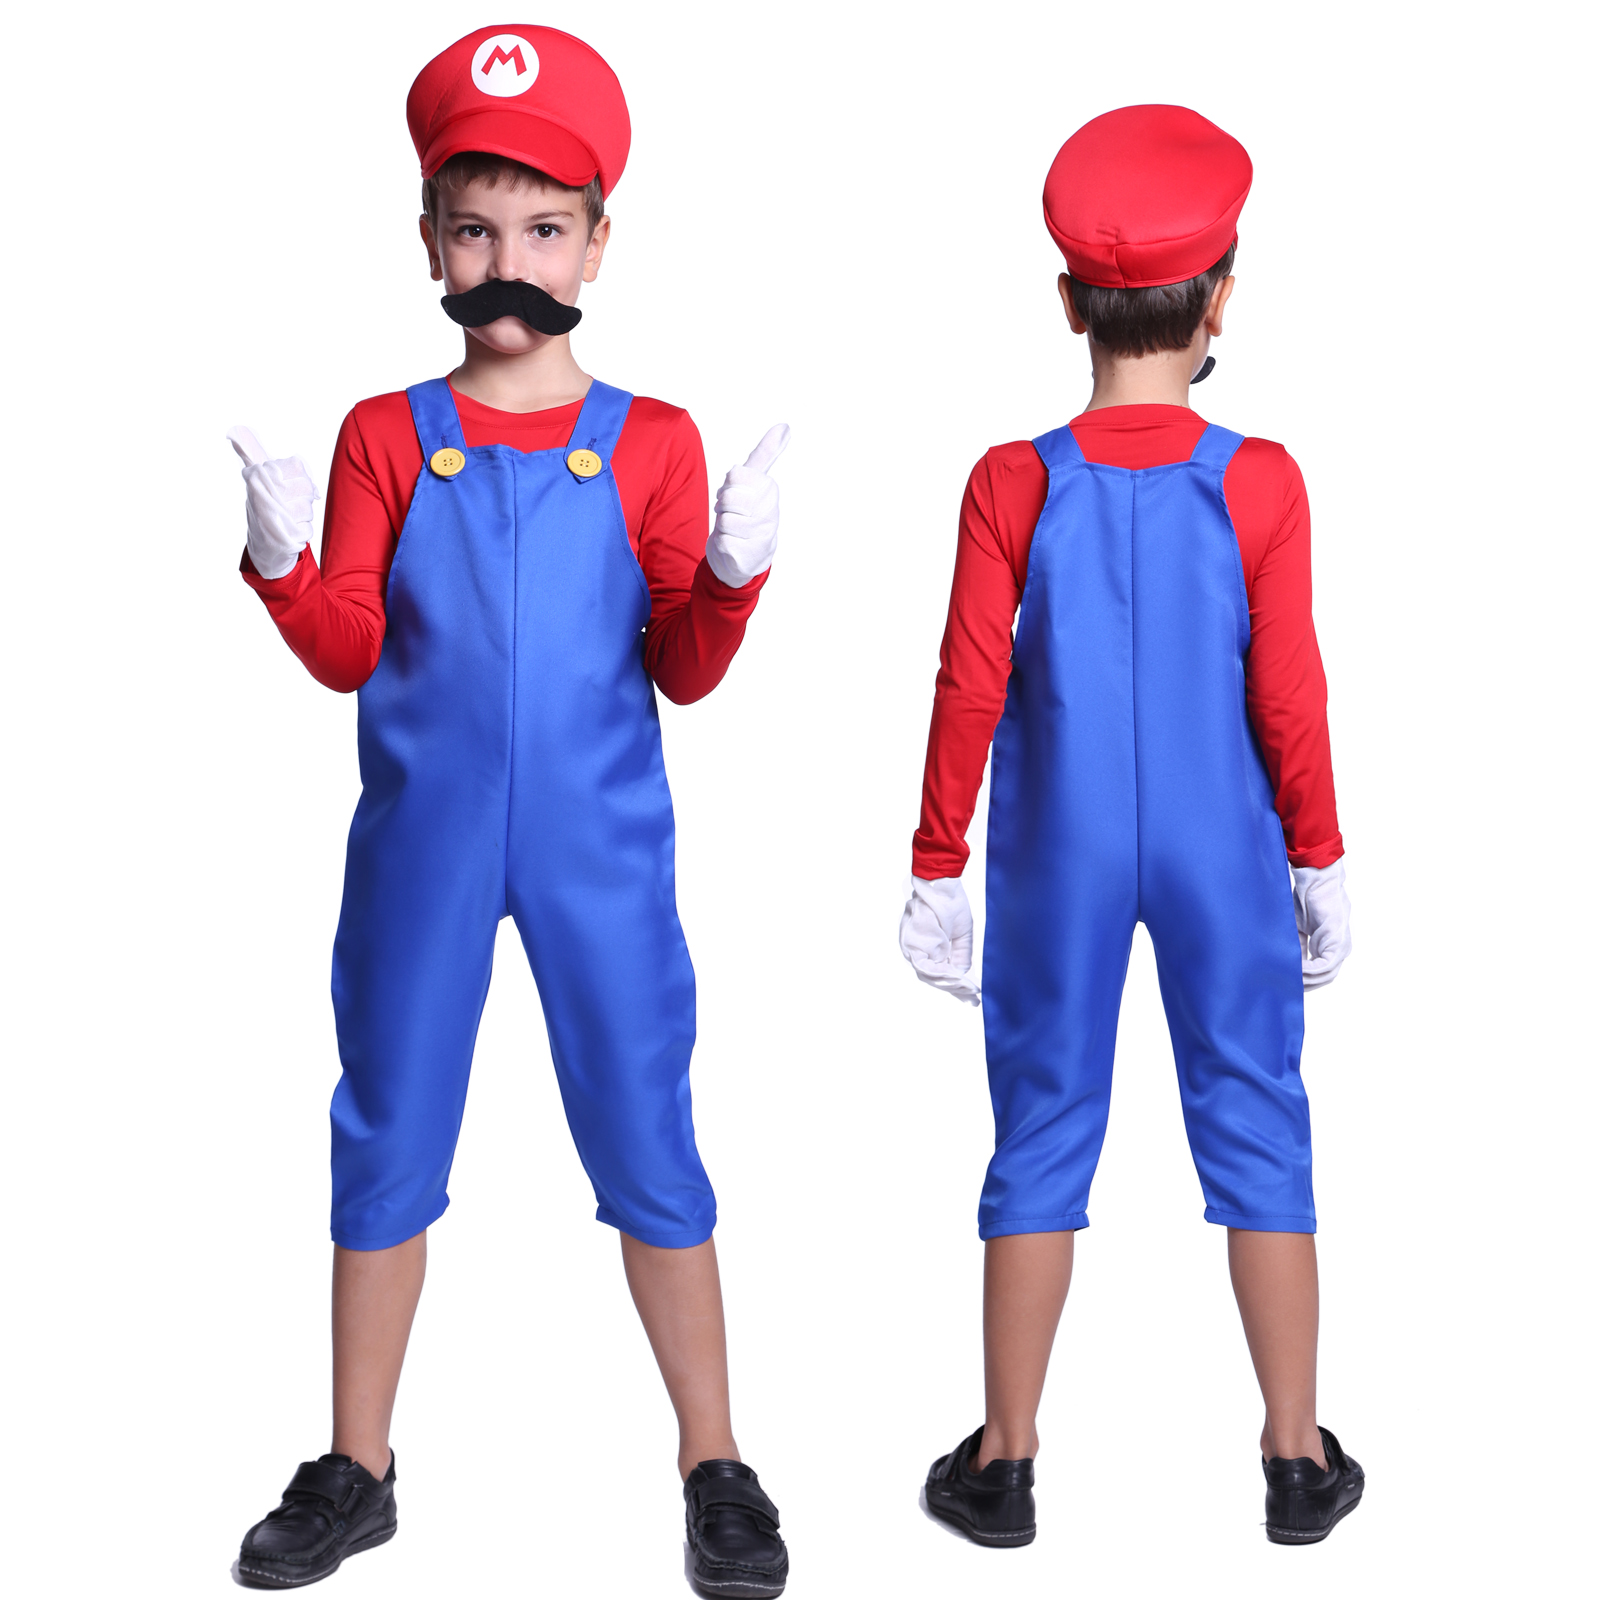 new kids super mario costume teen boys clothes fancy dress party moustache hat ebay. Black Bedroom Furniture Sets. Home Design Ideas